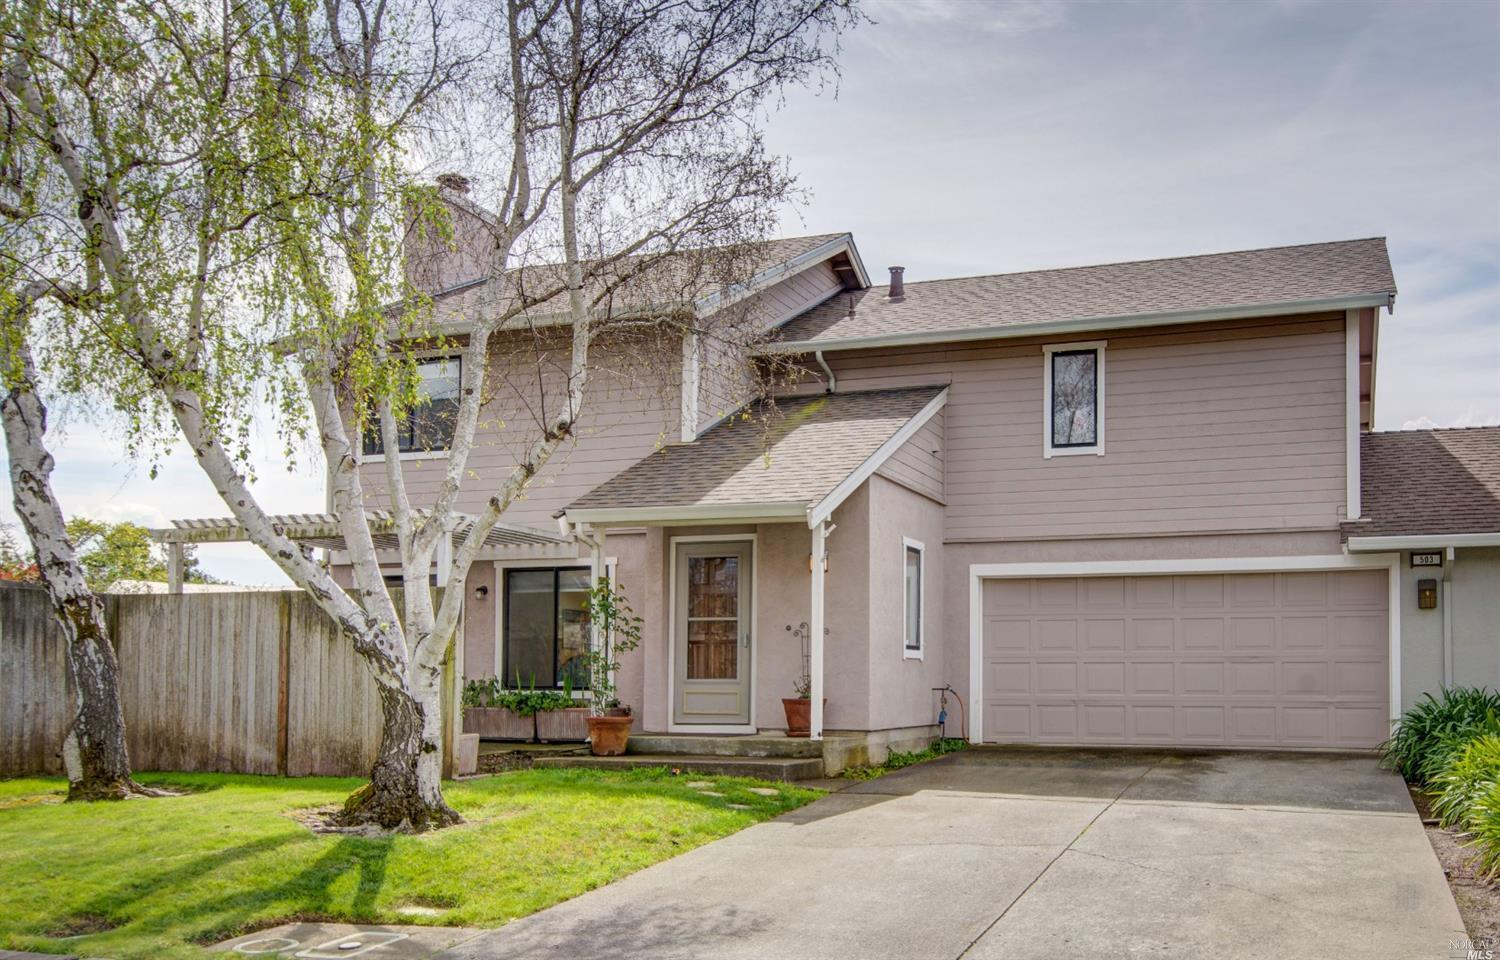 503 Cypress Court, Benicia, CA 94510